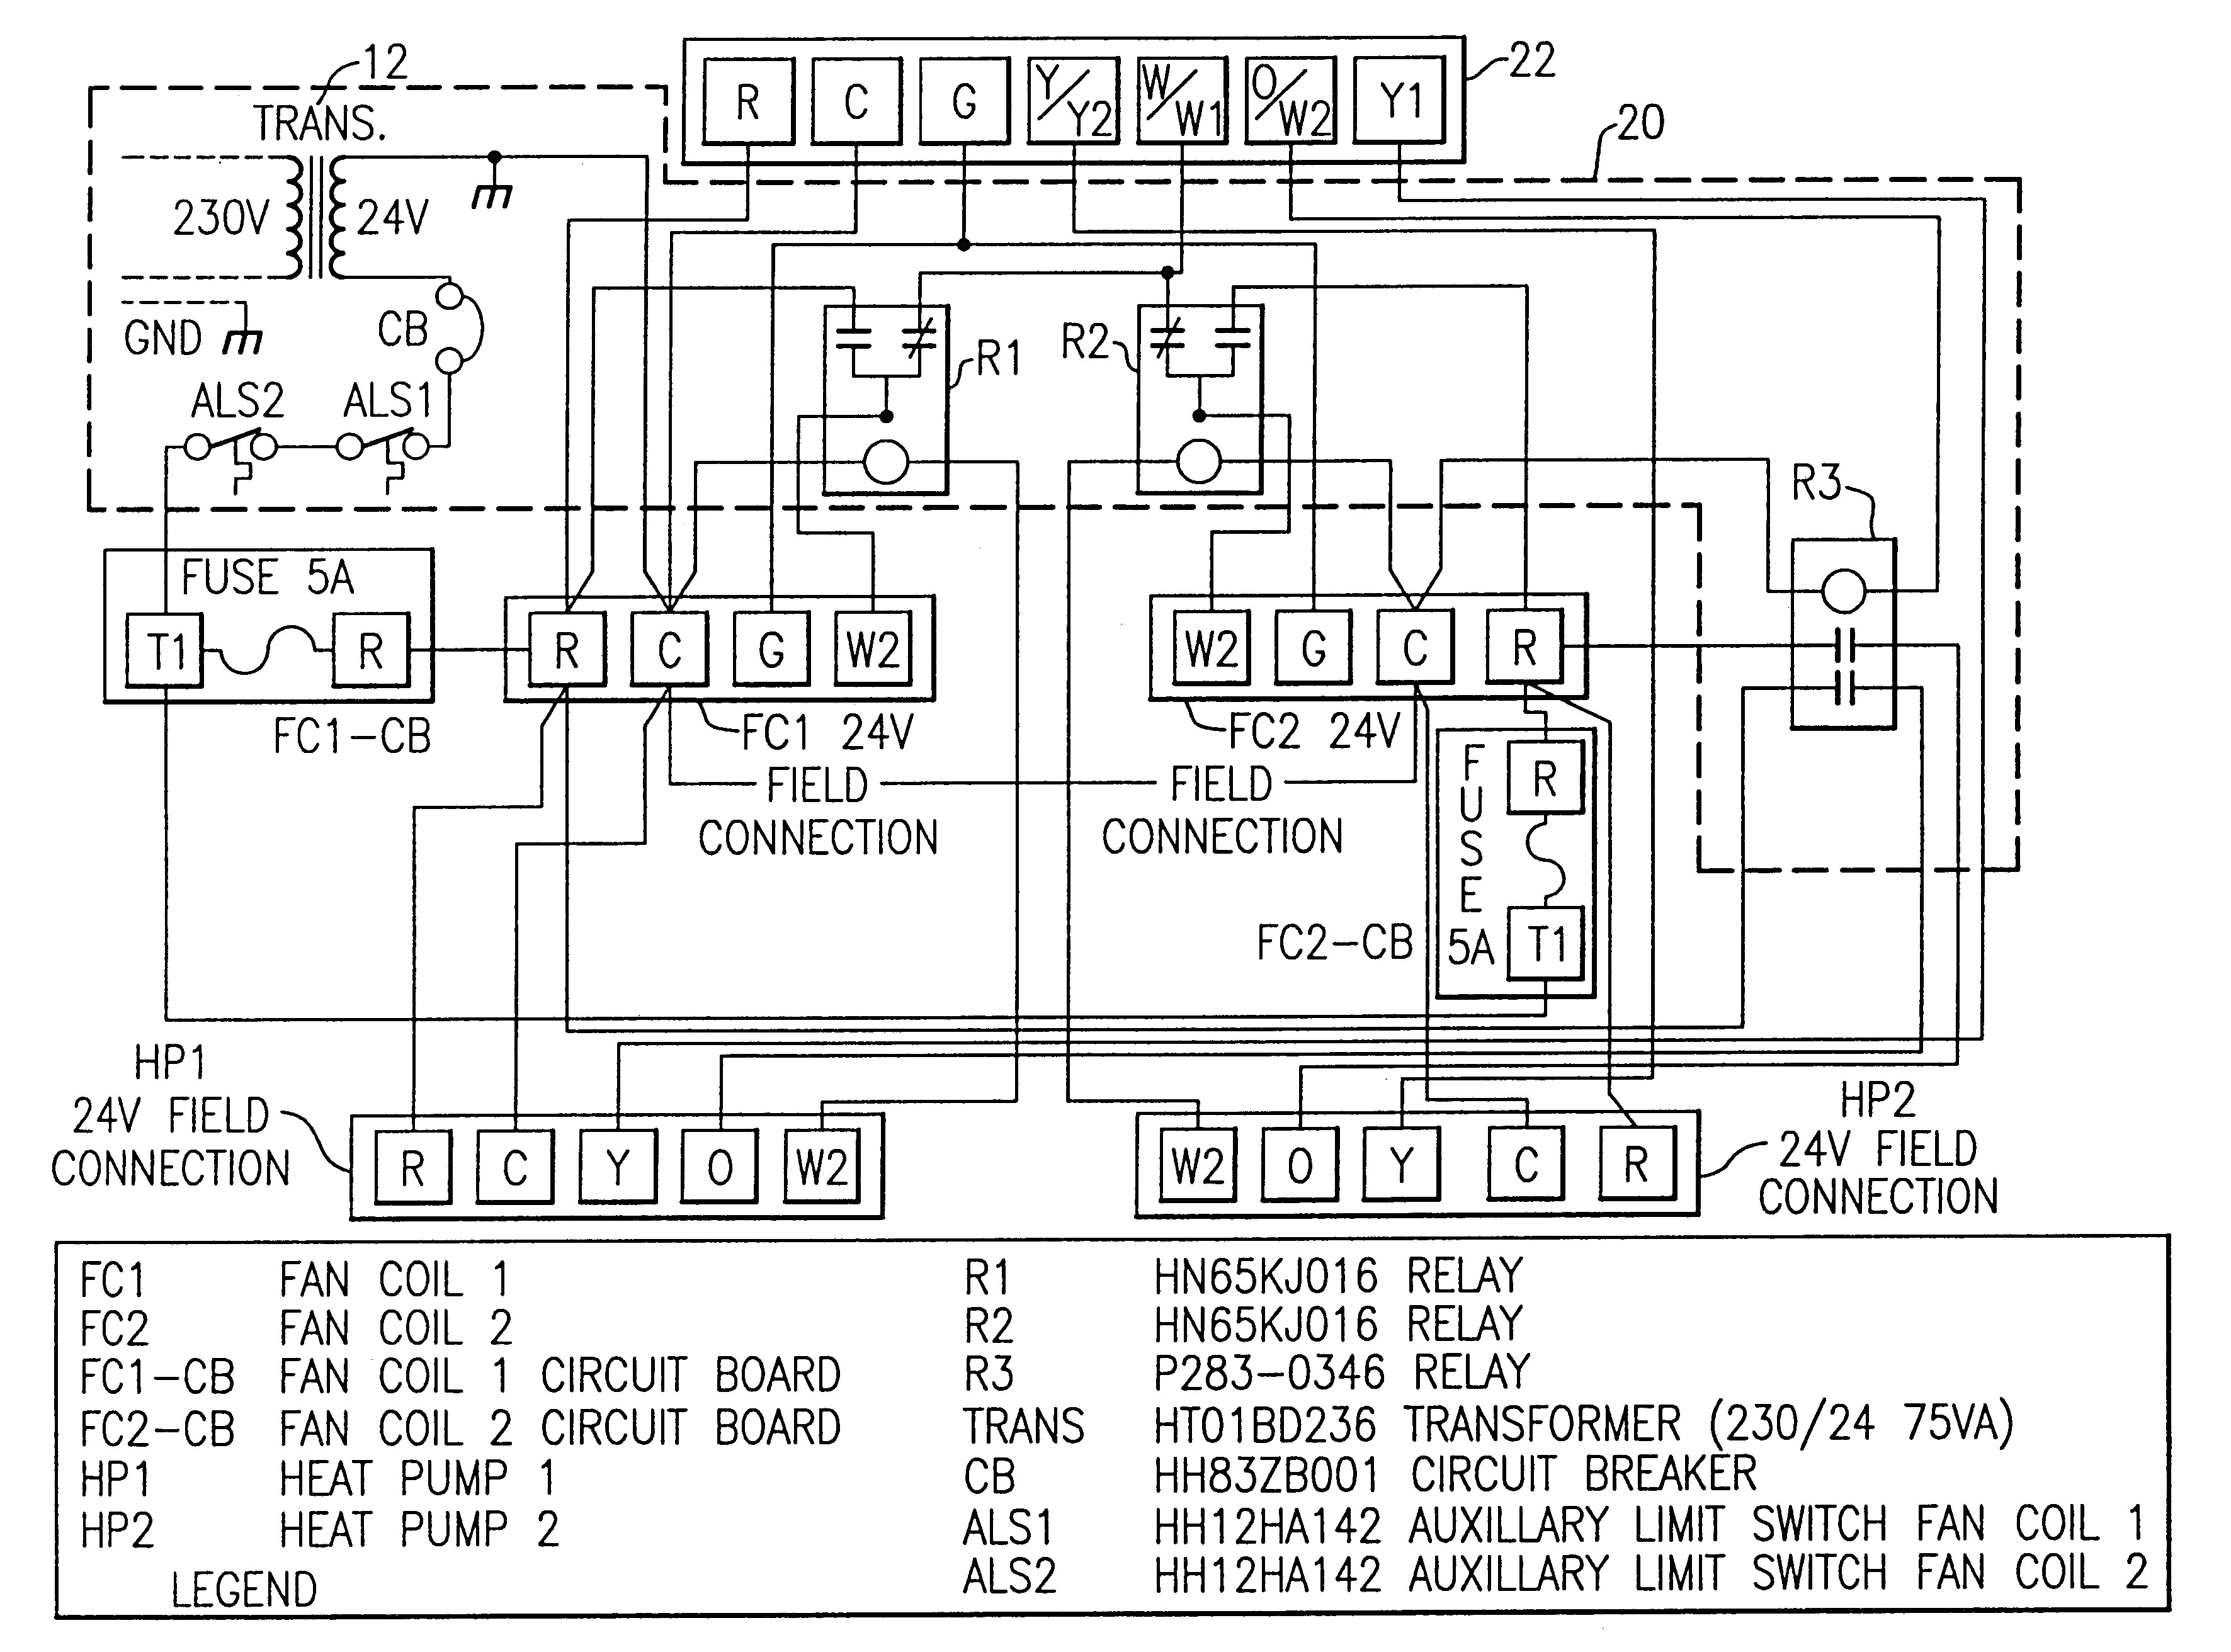 American Standard Furnace Wiring Diagram Gas Furnace Wiring Diagram Luxury Stain American Standard with